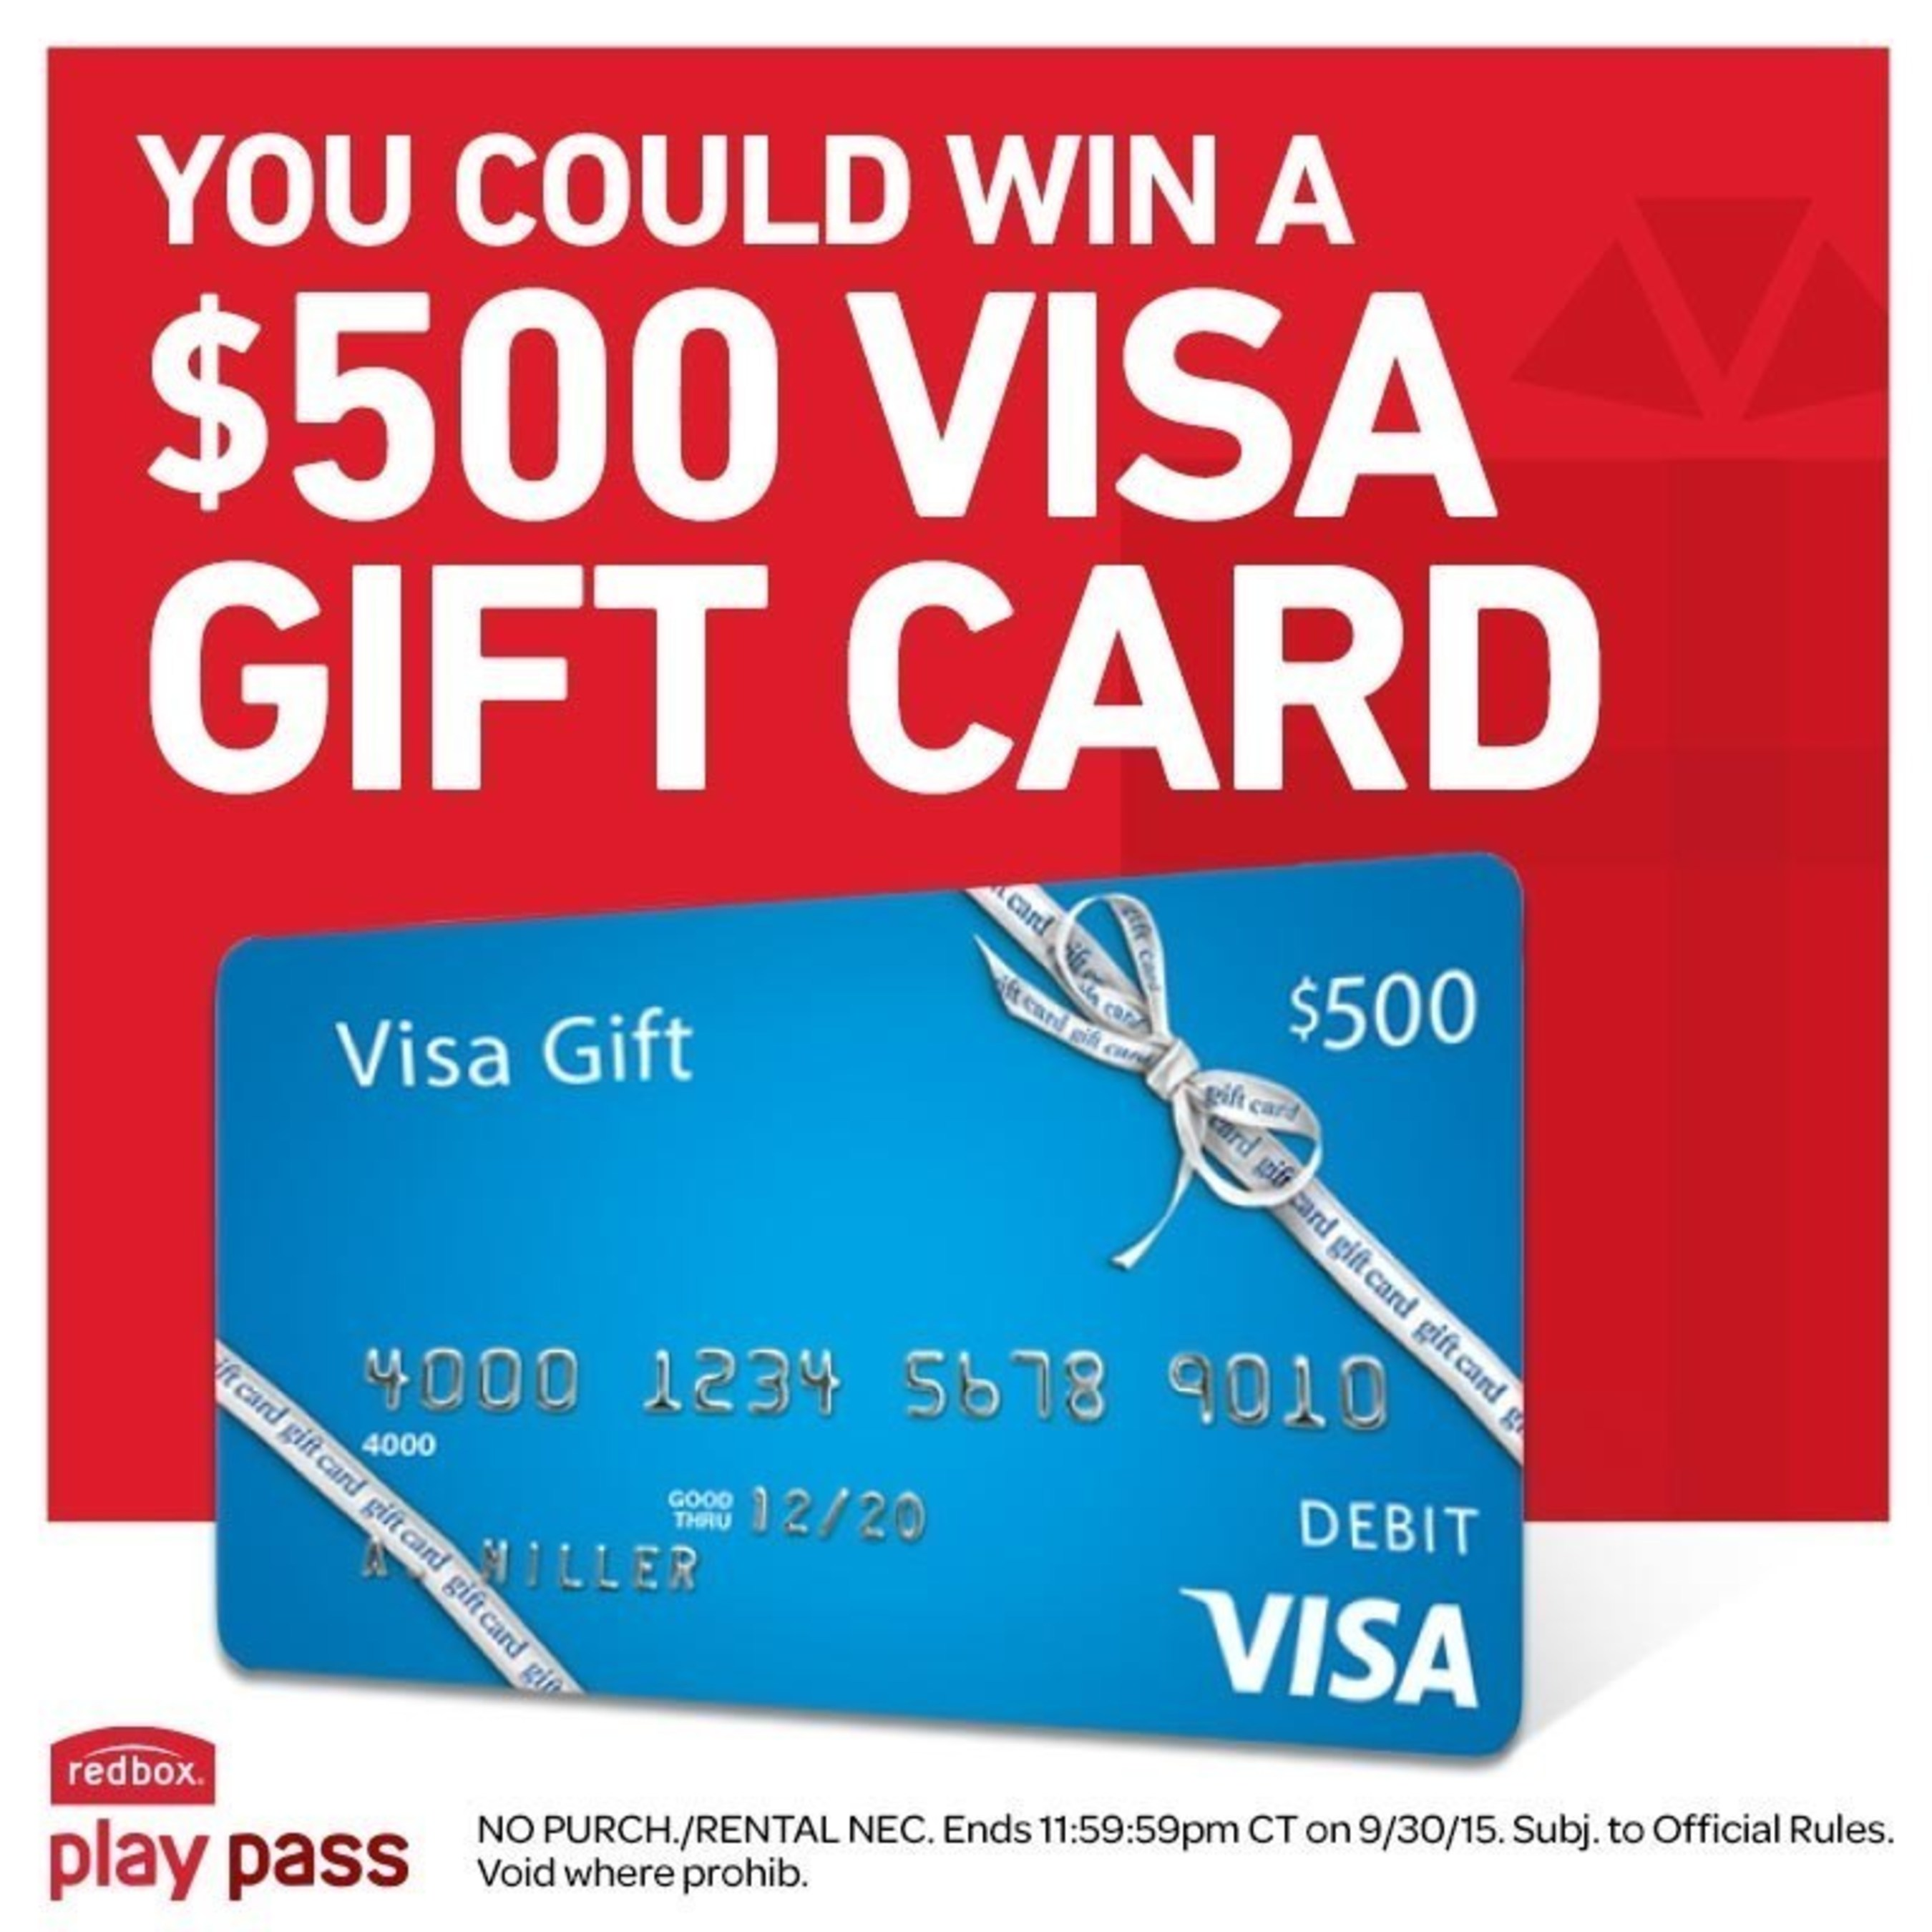 Redbox And Visa Team Up To Offer Consumers A Chance To Win 500